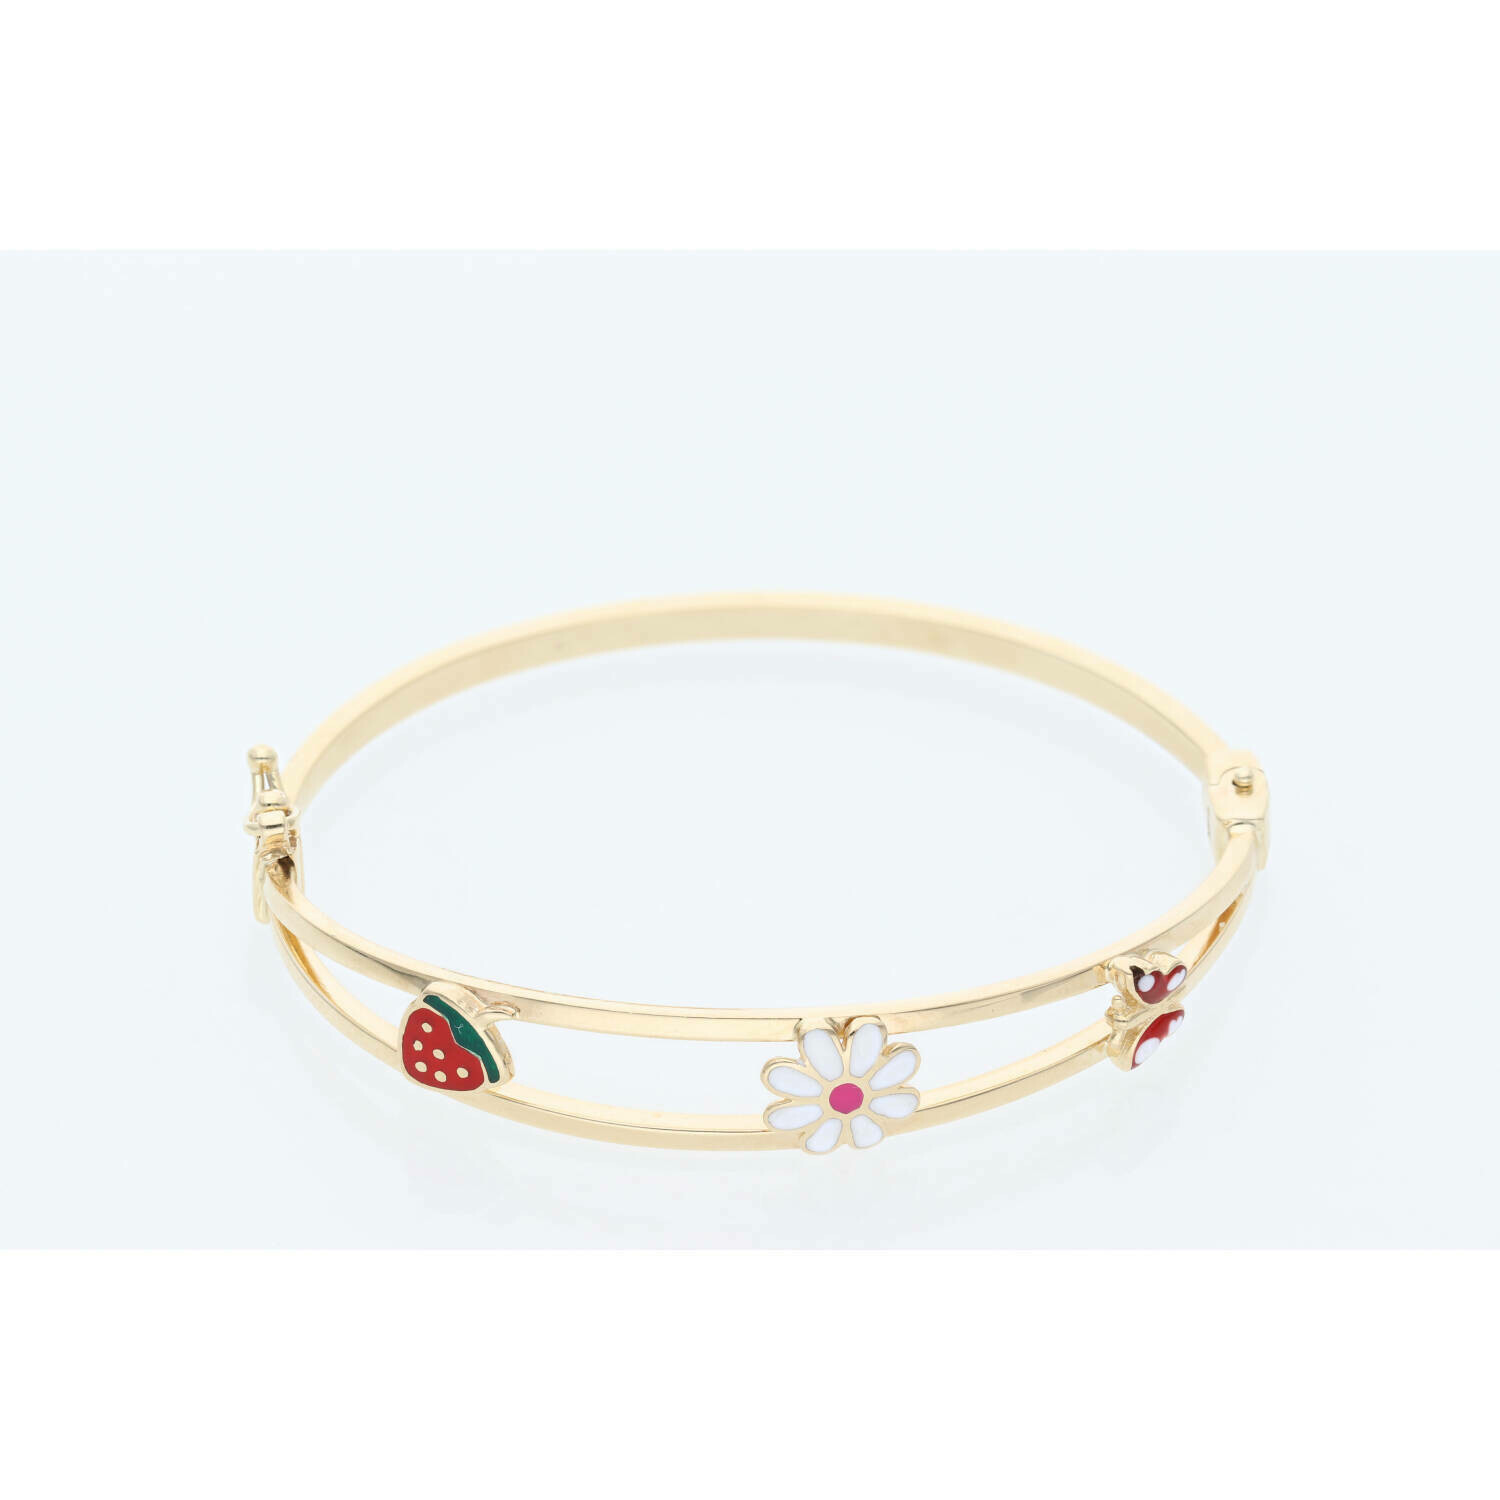 14 Karat Gold Strawberry Flower Butterfly Bangle 2.4-8mm x 6